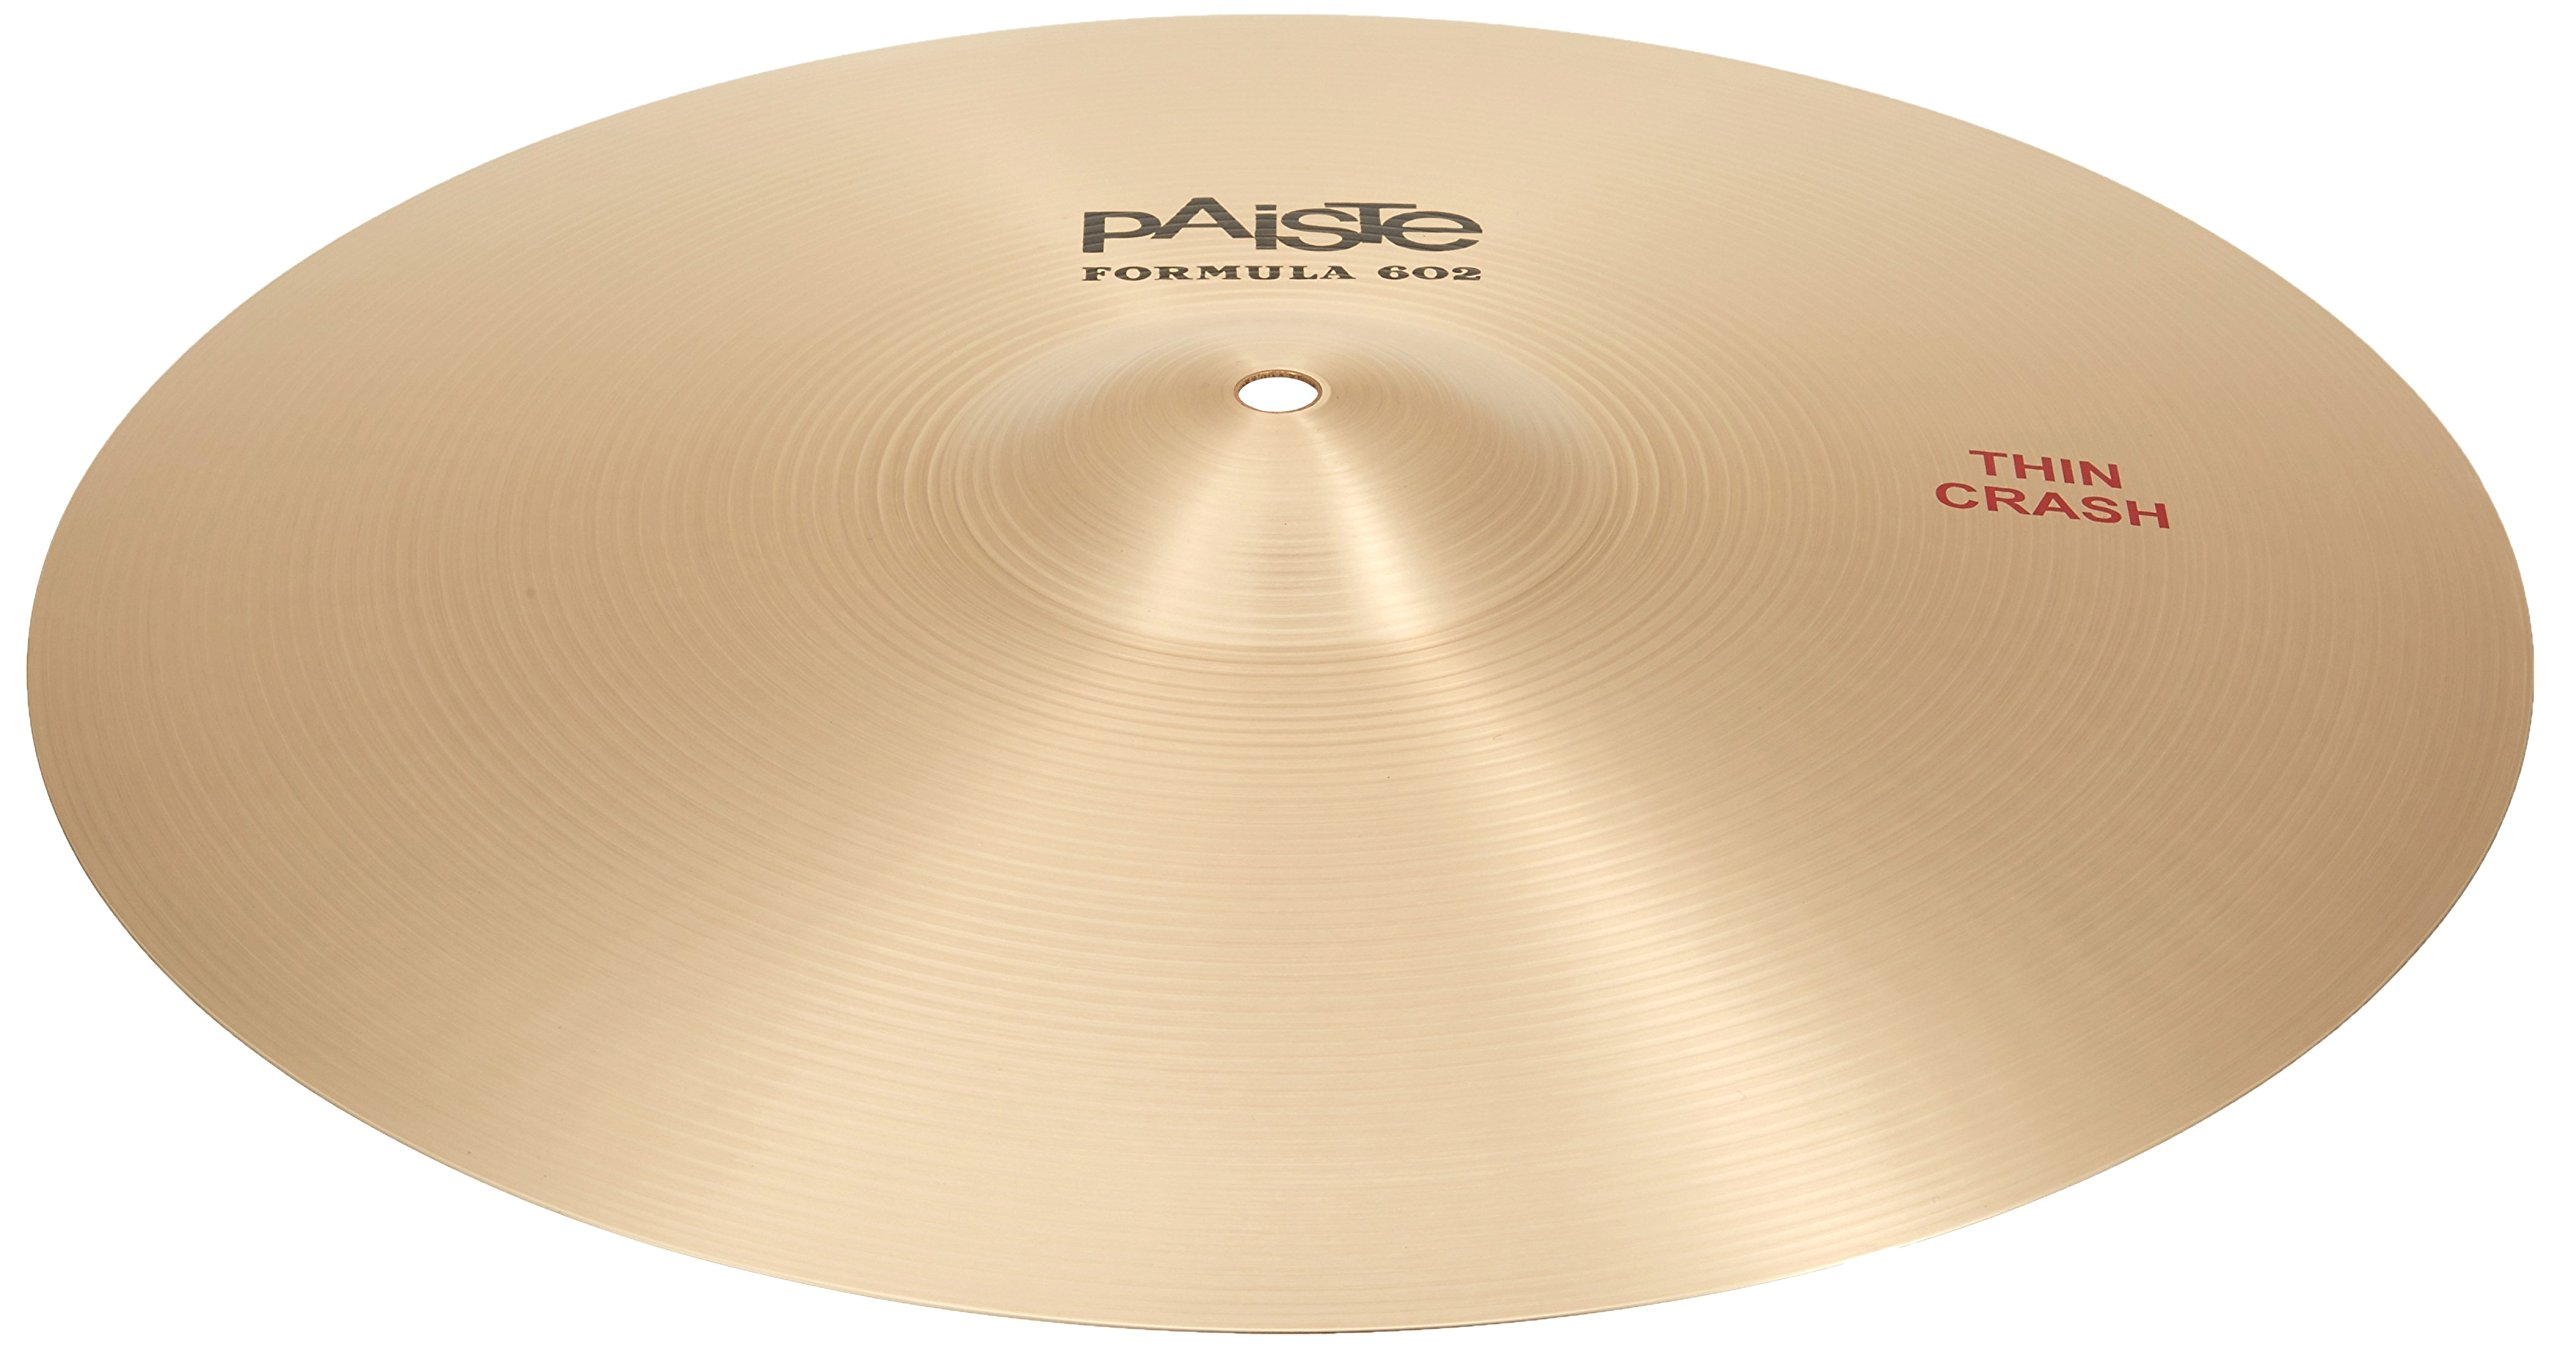 Paiste Formula 602 Series Crash 16 in. Thin